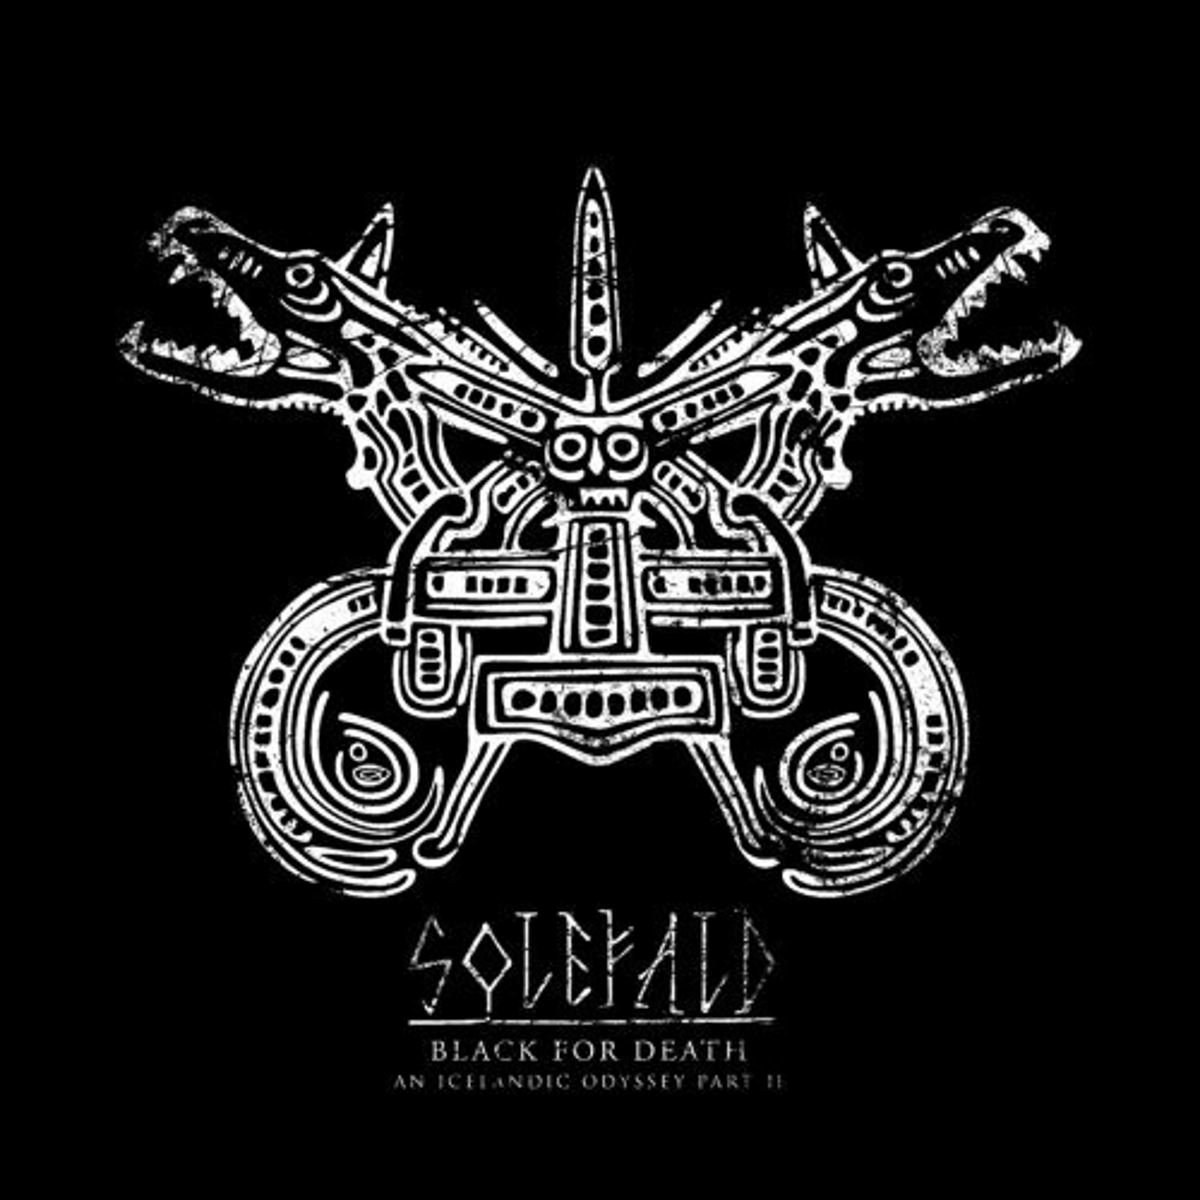 Review for Solefald - Black for Death (An Icelandic Odyssey: Part II)